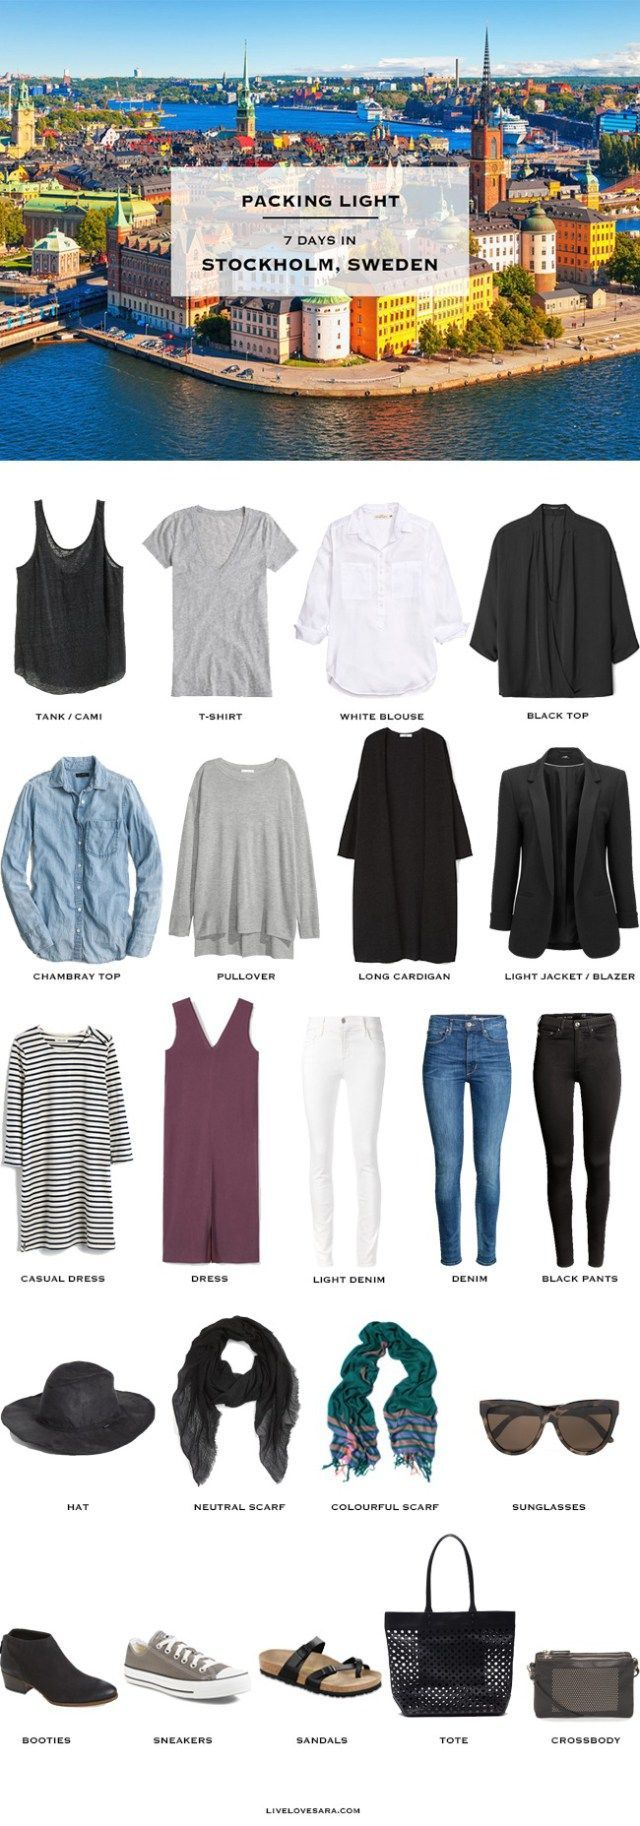 livelovesara - My life in a blog by Sara Watson. What to pack for Stockholm, Sweden in August.